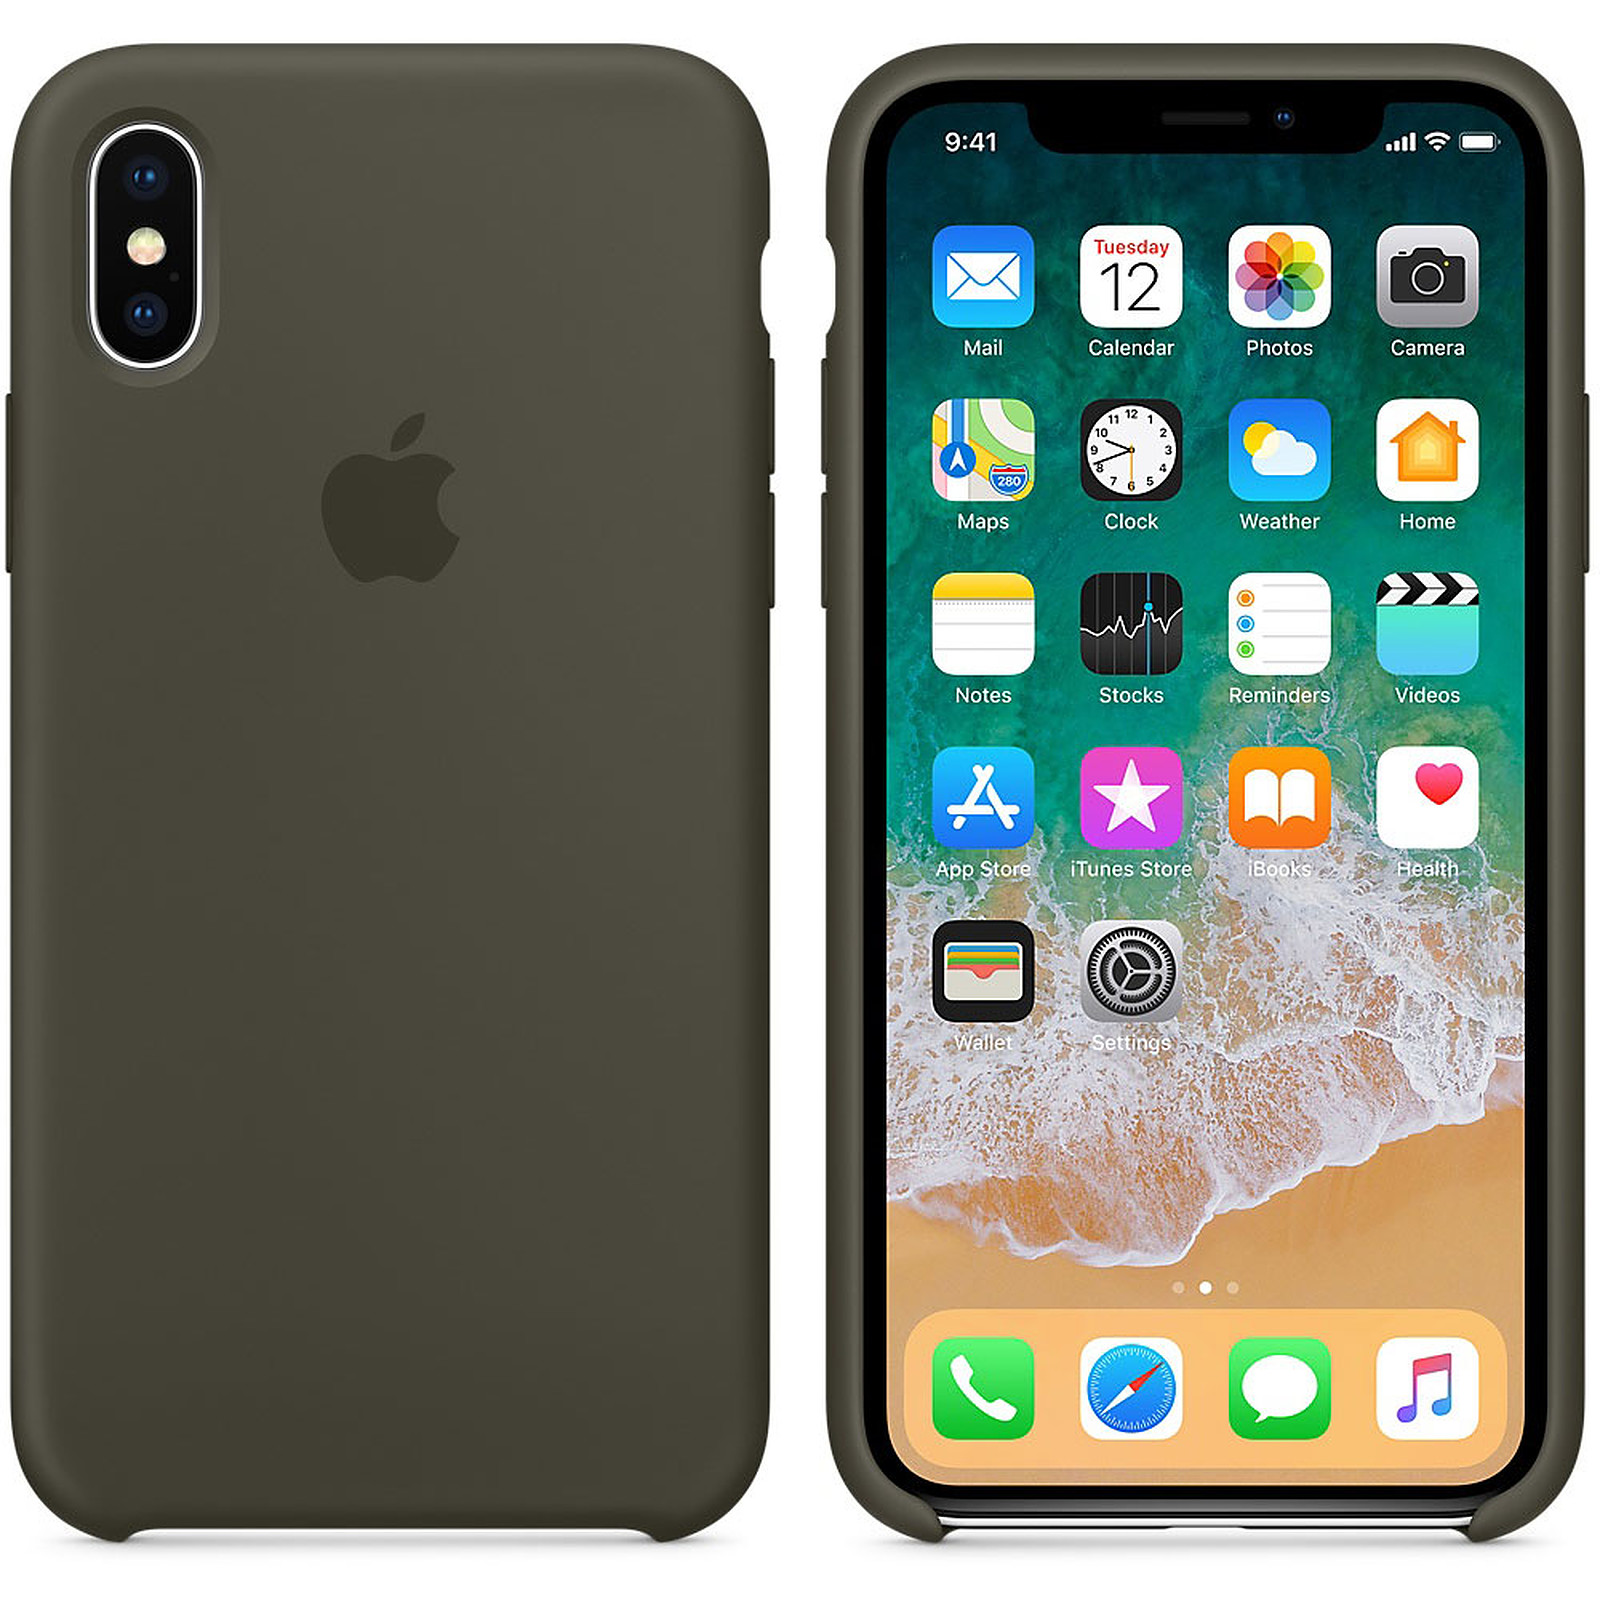 Apple Carcasa de silicona Oliva oscura Apple iPhone X